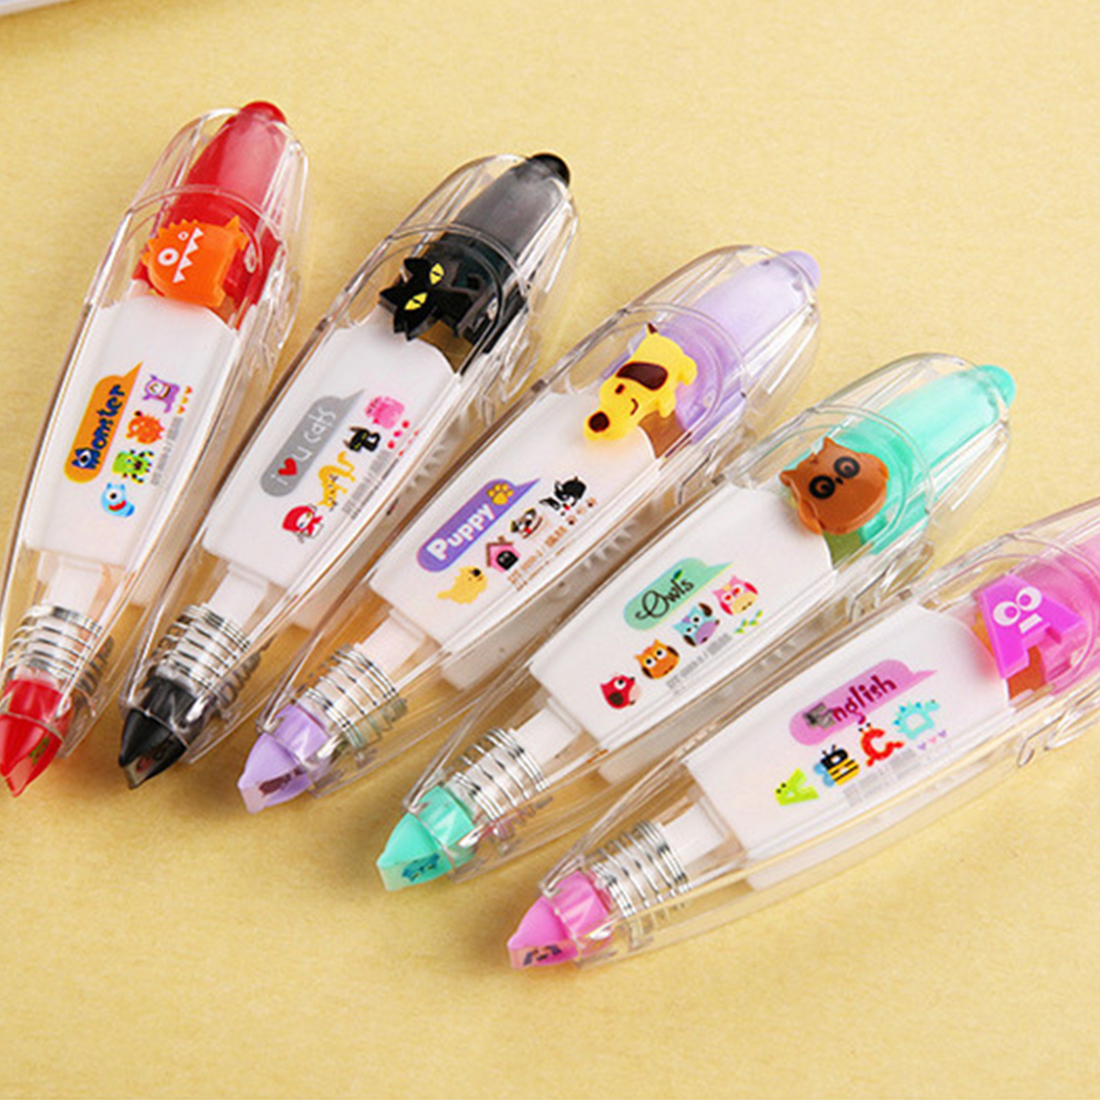 FUN Cartoon Floral Sticker Tape Pen Funny Kids Stationery Notebook Diary Decoration Tapes Label Sticker Paper Decor